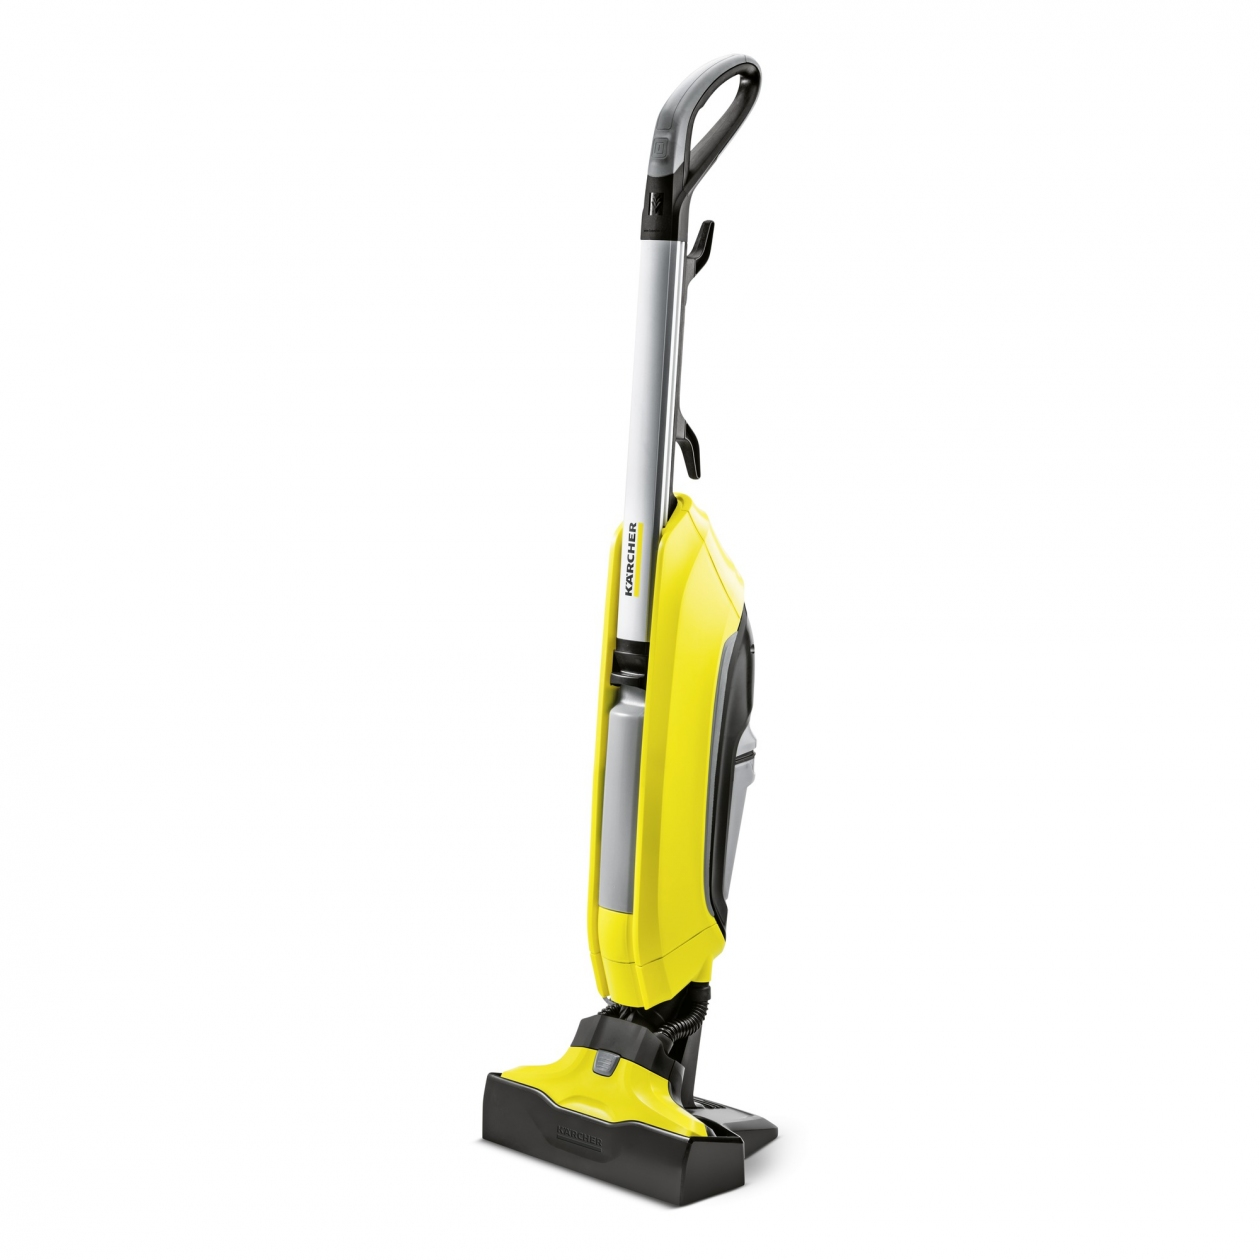 Karcher Reiniger Karcher K4 Pressure Washer Price In Pakistan Homeshopping